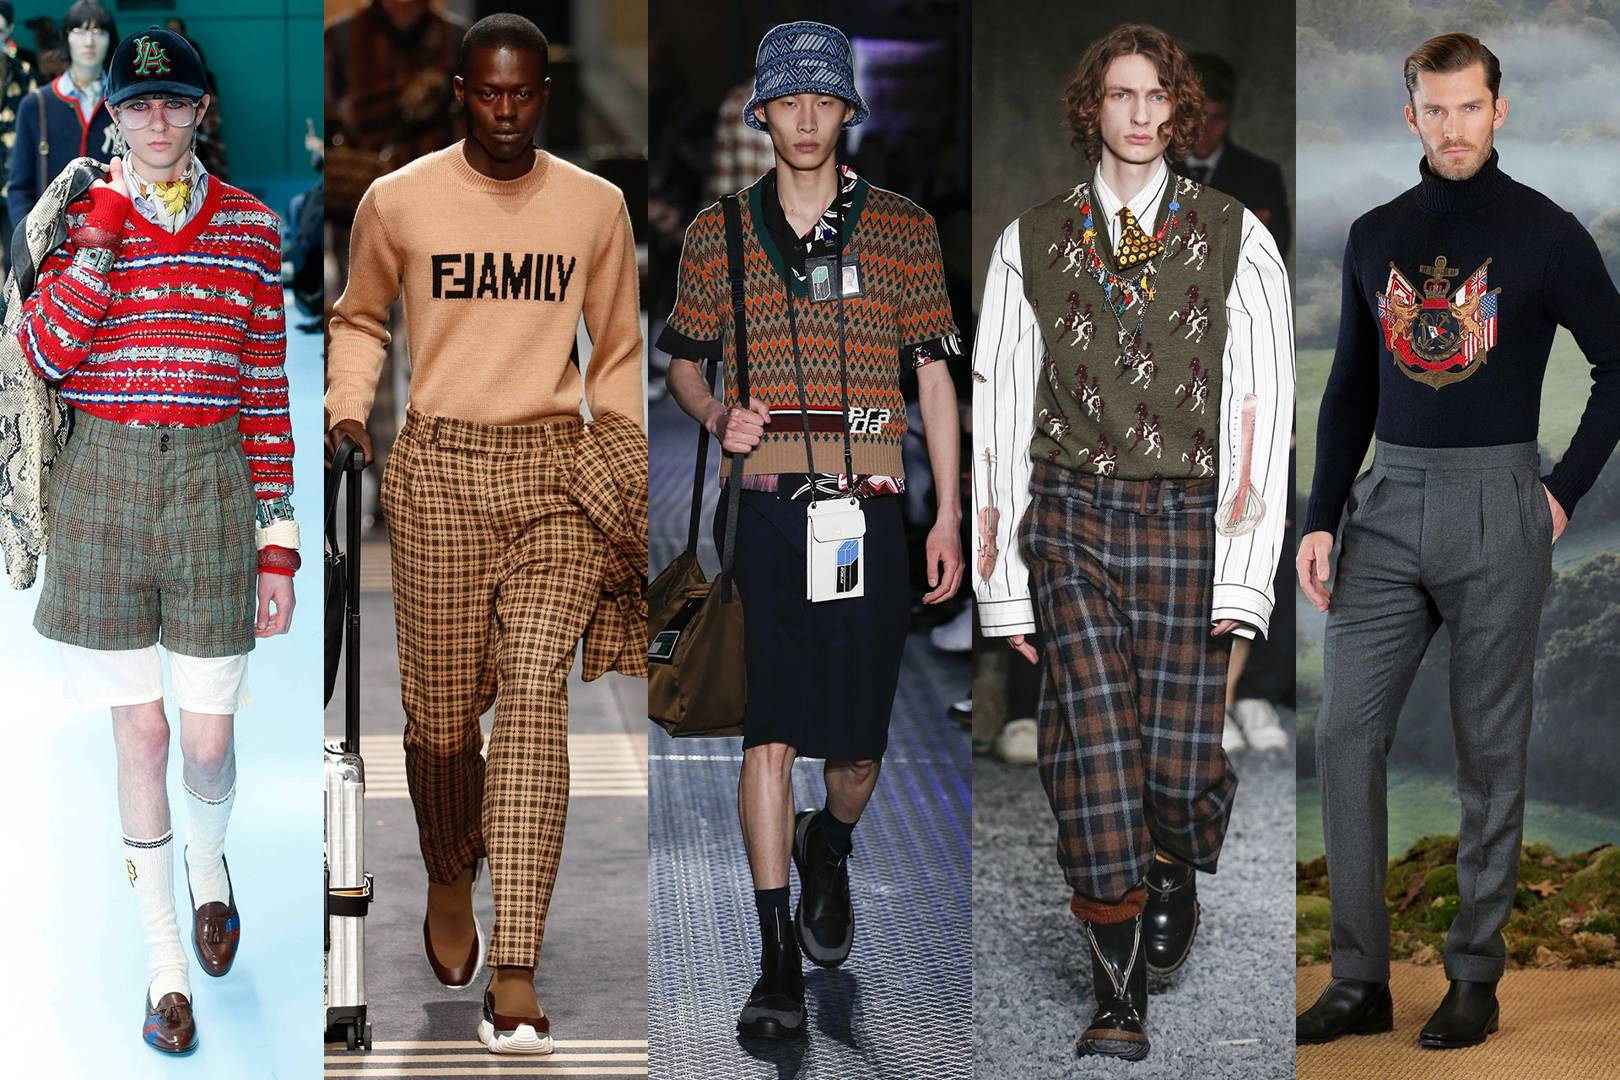 f30bda82 Autumn/Winter 2018 trends for men: What you need to know | British GQ